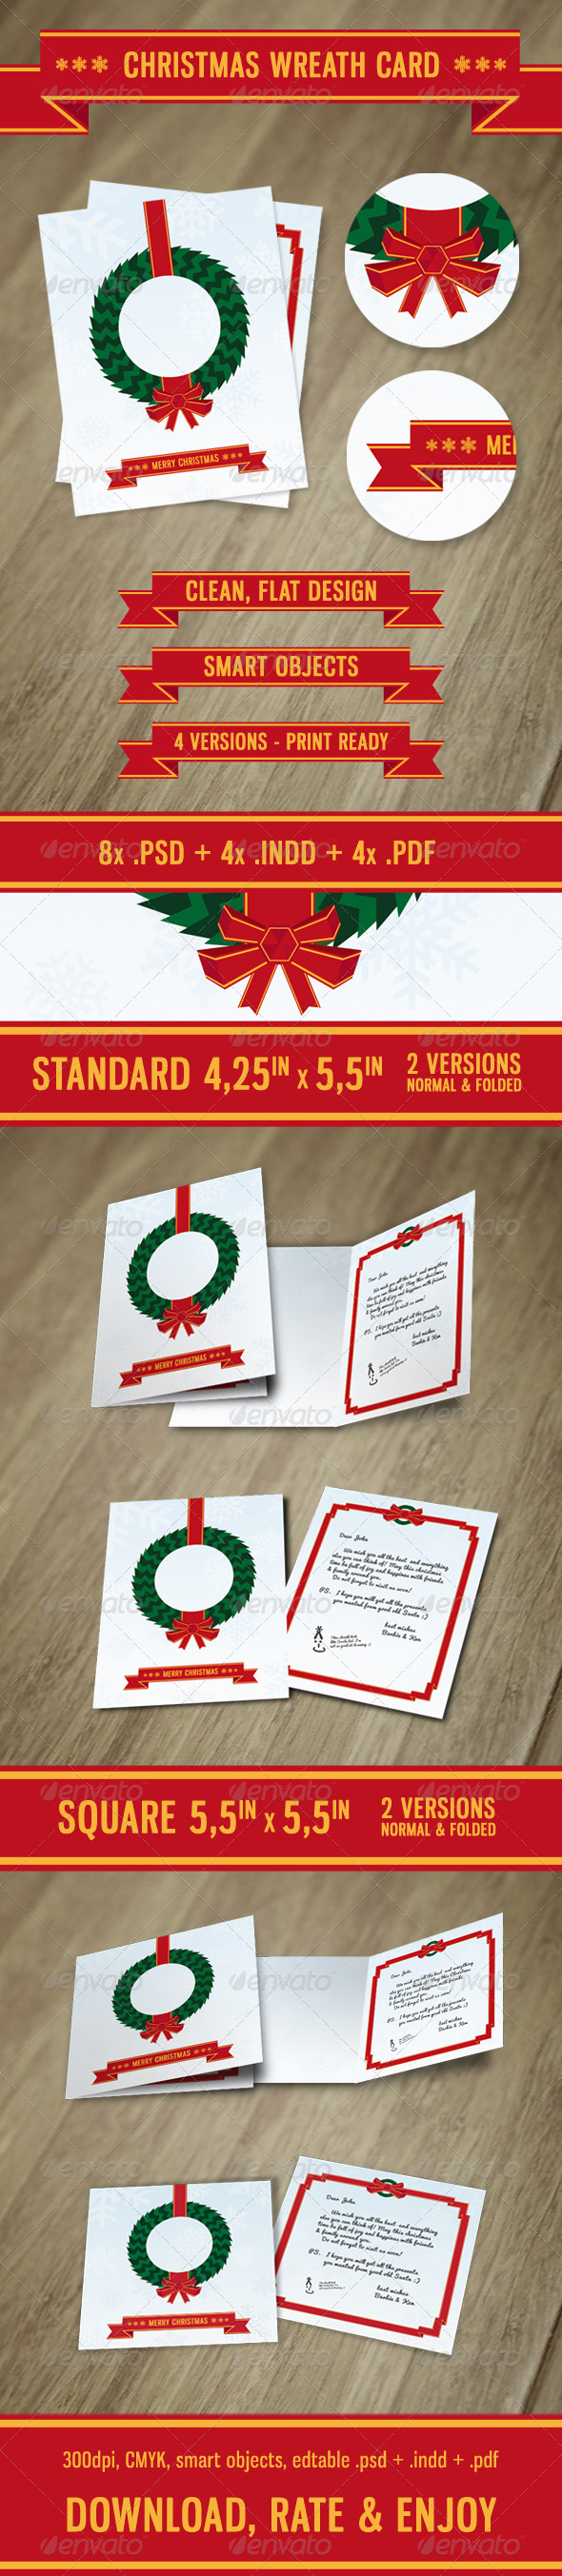 GraphicRiver Christmas Wreath Card 5971656